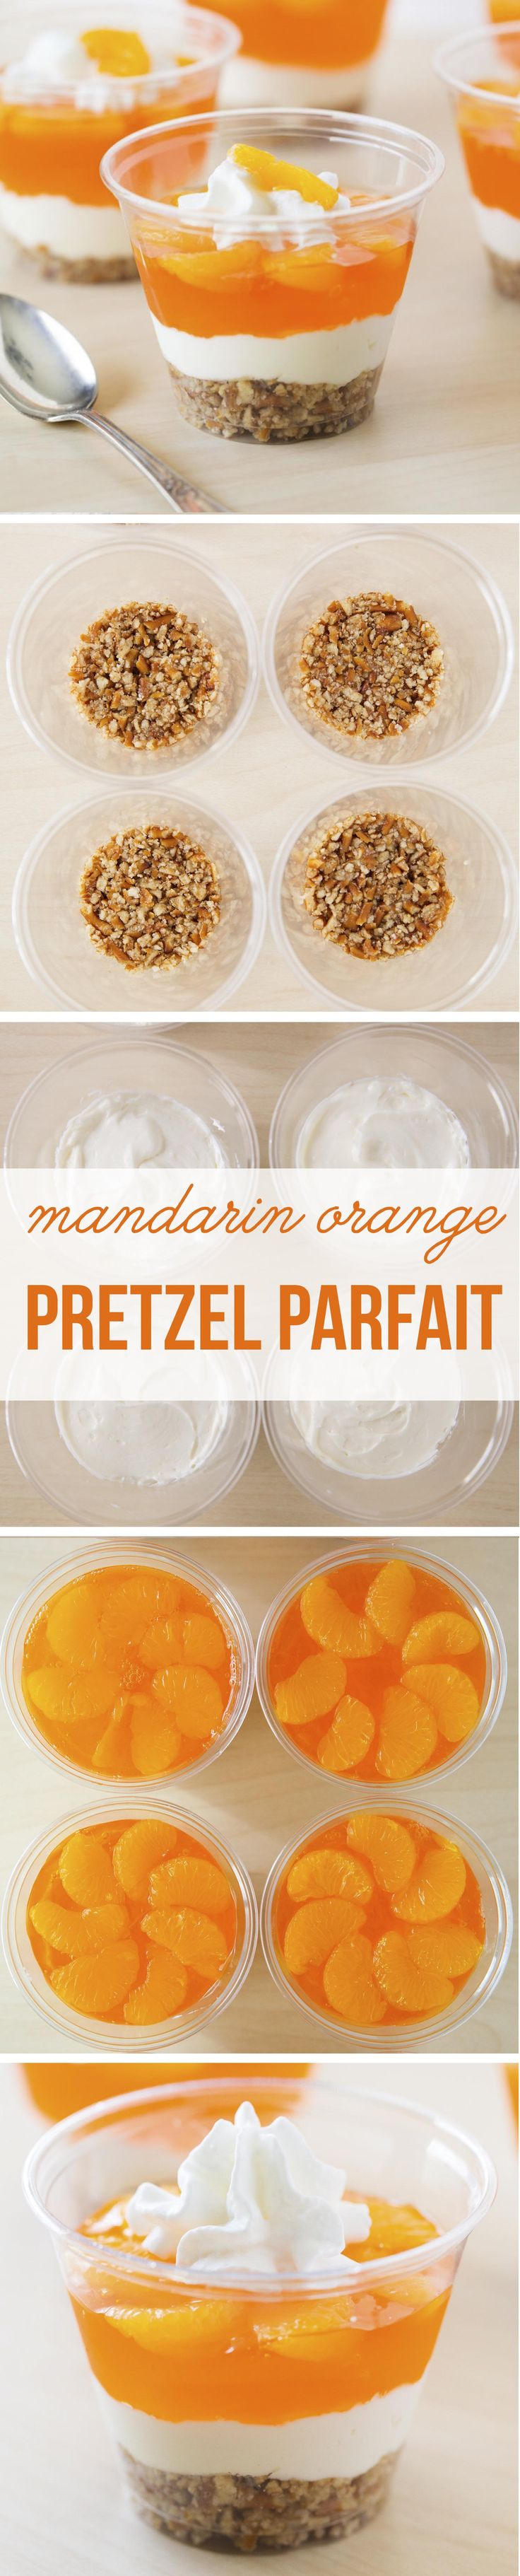 Easy no-bake mandarin orange pretzel parfaits made with mandarin oranges a pretzel crust and cheesecake filling!